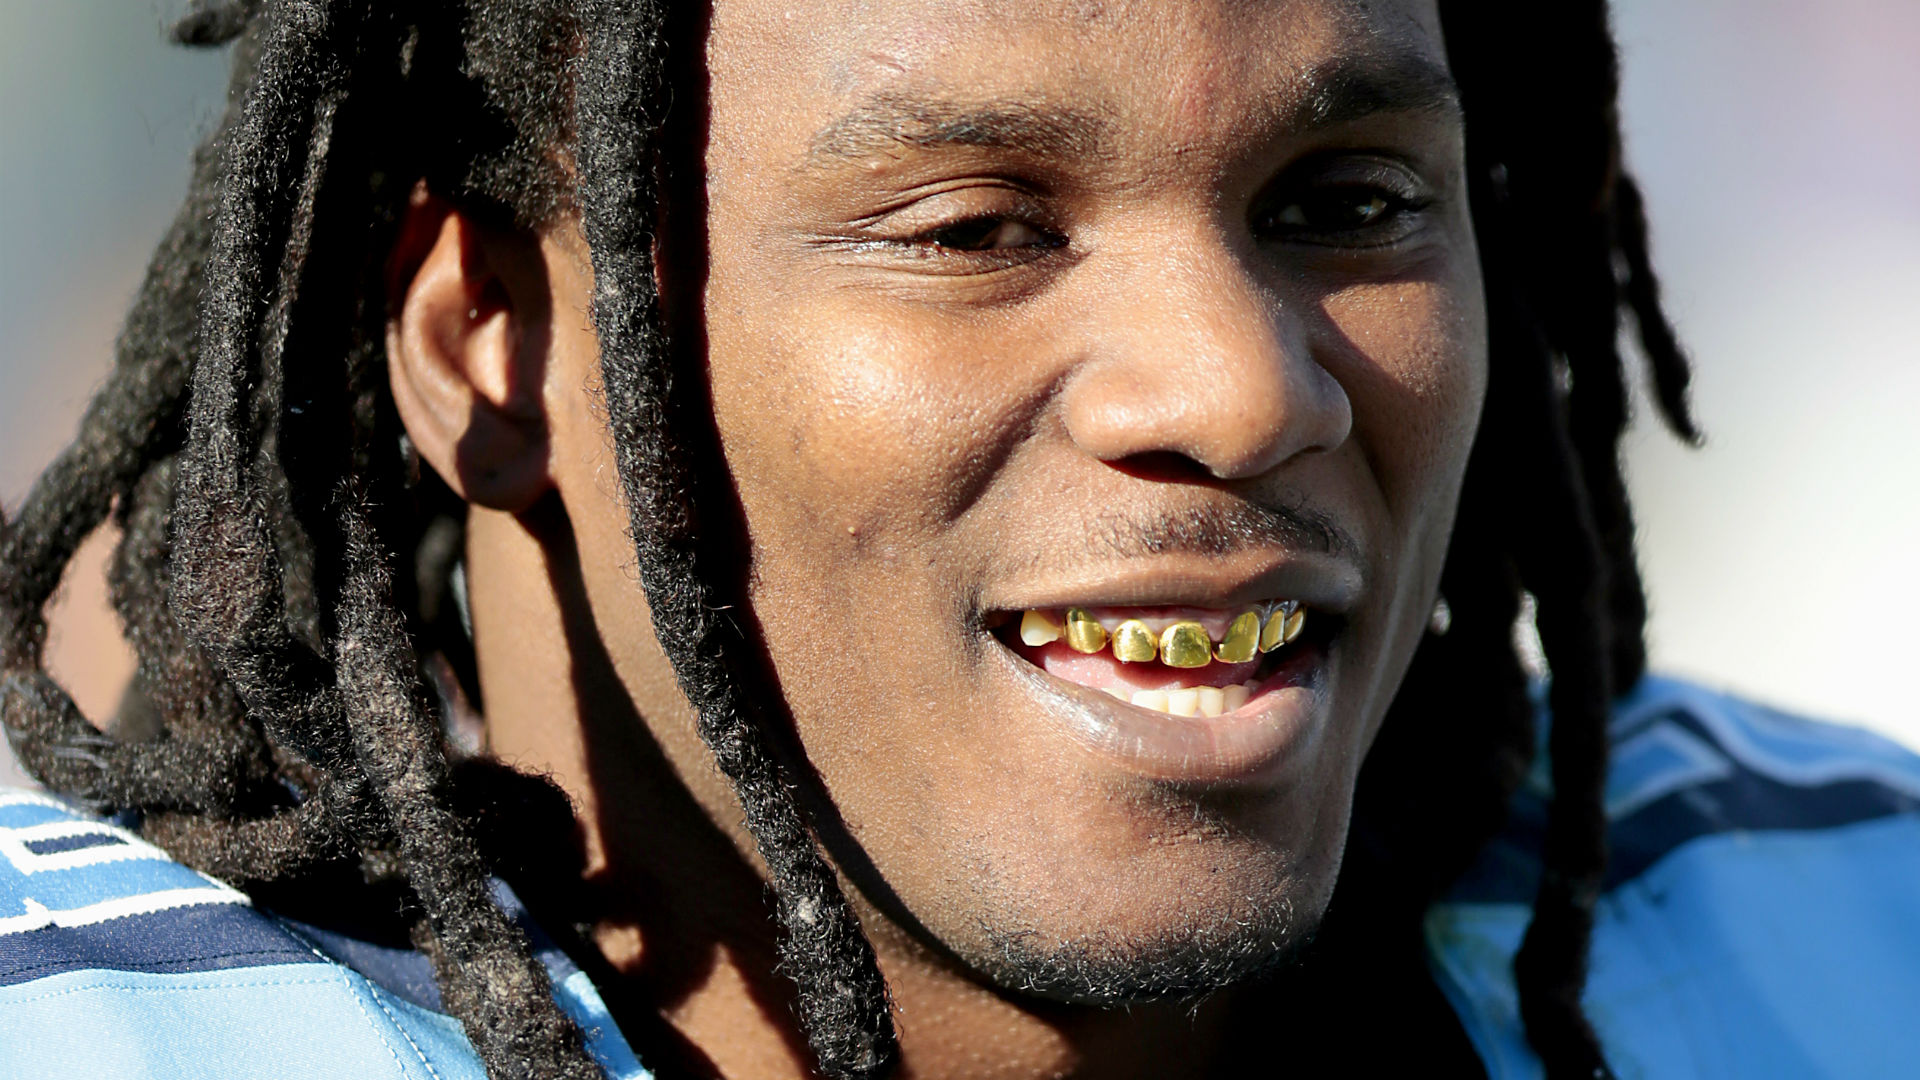 Free agent Chris Johnson, Jets reach 2-year deal